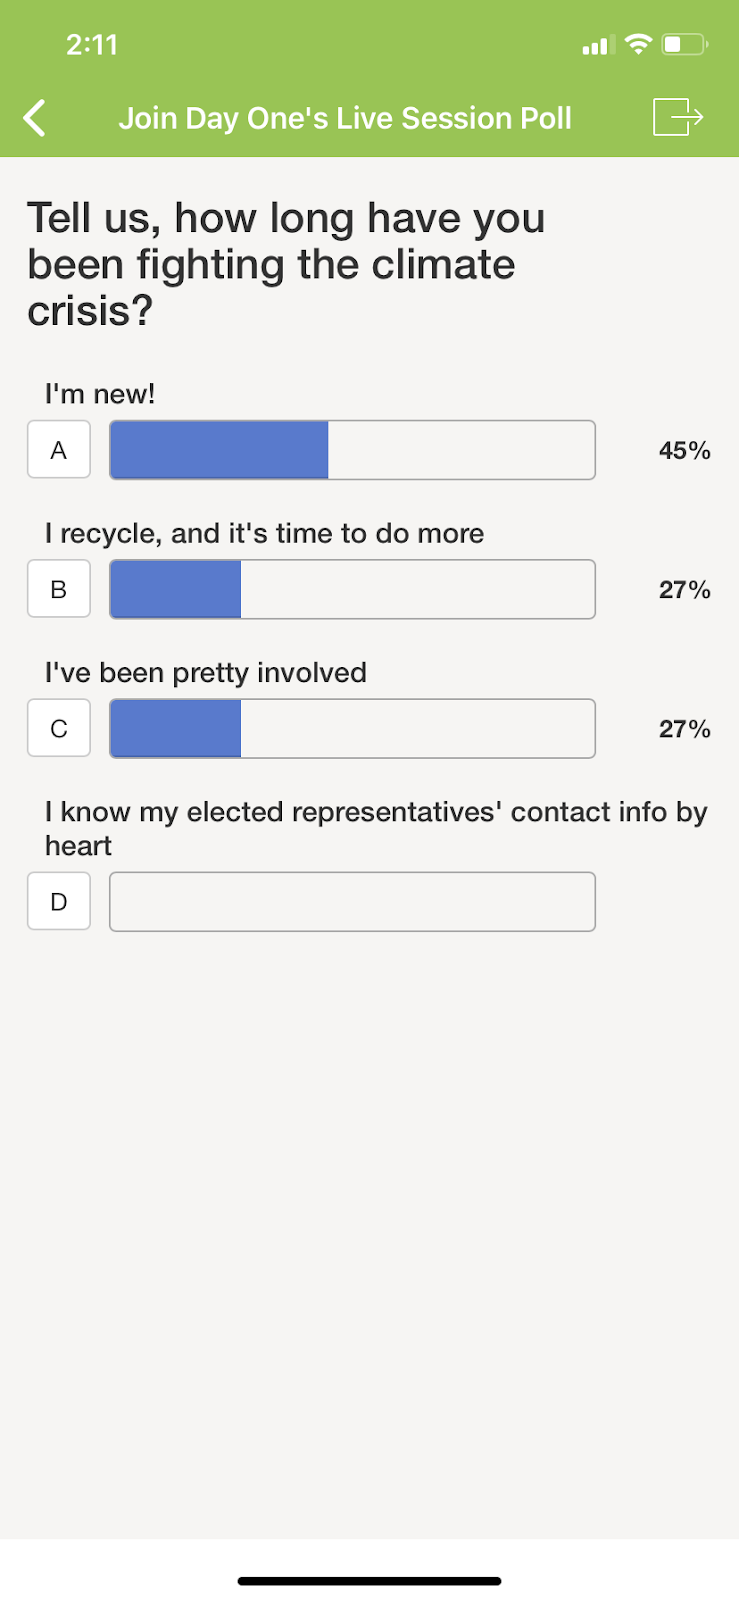 Image of event mobile app poll question asking how long have you been fighting the climate crisis?